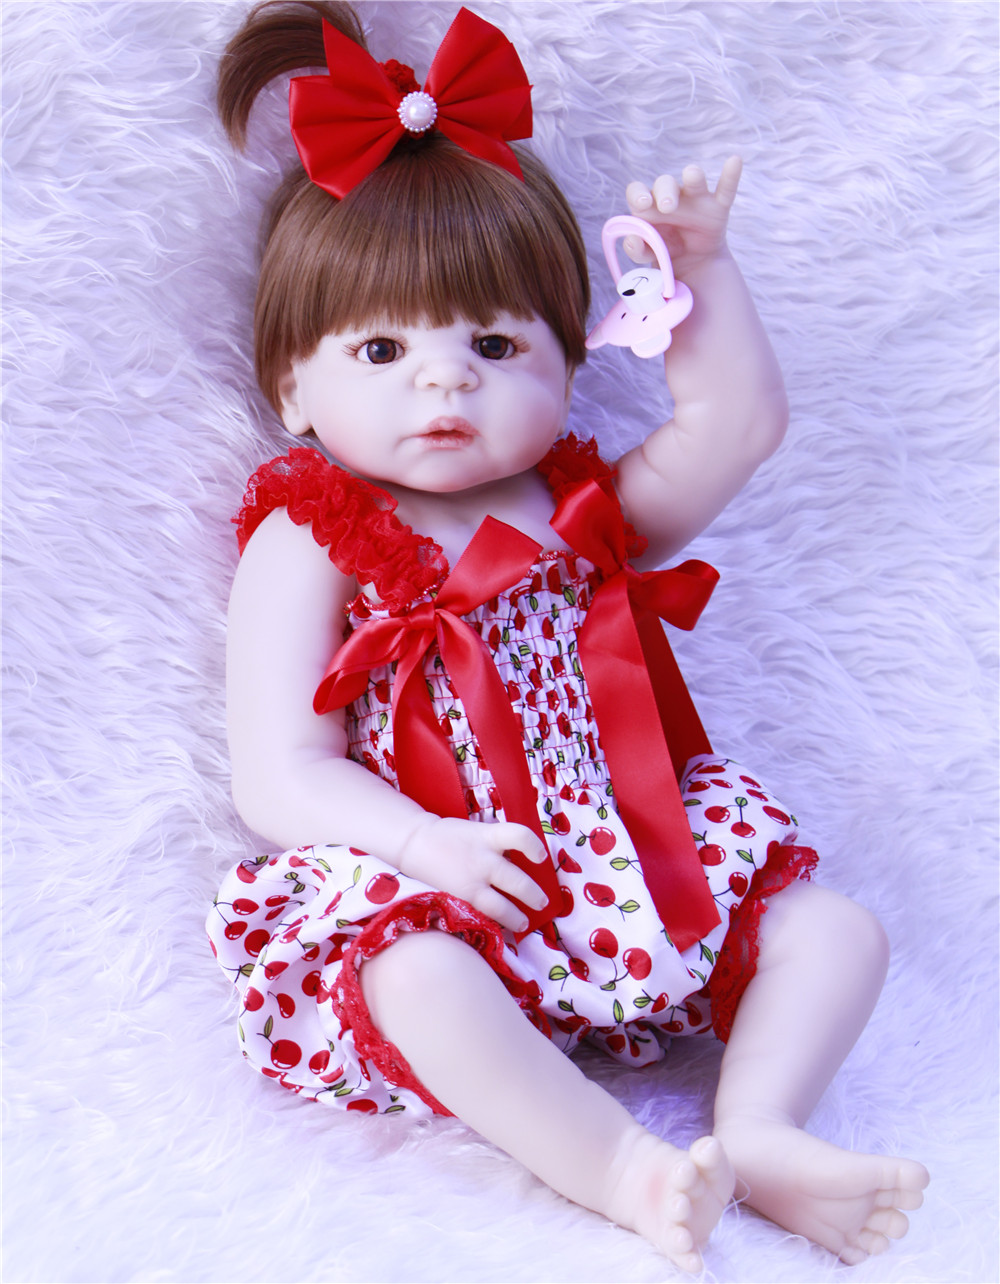 23inch Full silicone Reborn Baby Dolls Babies Doll collectible Doll bebe toys dolls vinyl newborn princess Toy Gifts for sale23inch Full silicone Reborn Baby Dolls Babies Doll collectible Doll bebe toys dolls vinyl newborn princess Toy Gifts for sale